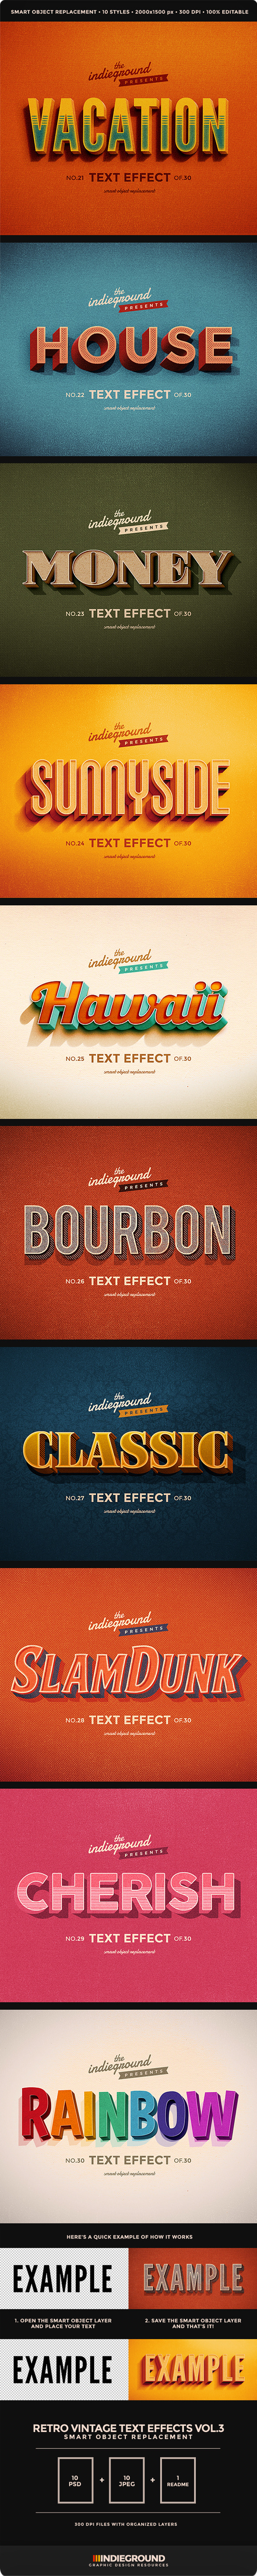 GraphicRiver Retro Vintage Text Effects Vol 3 10457336